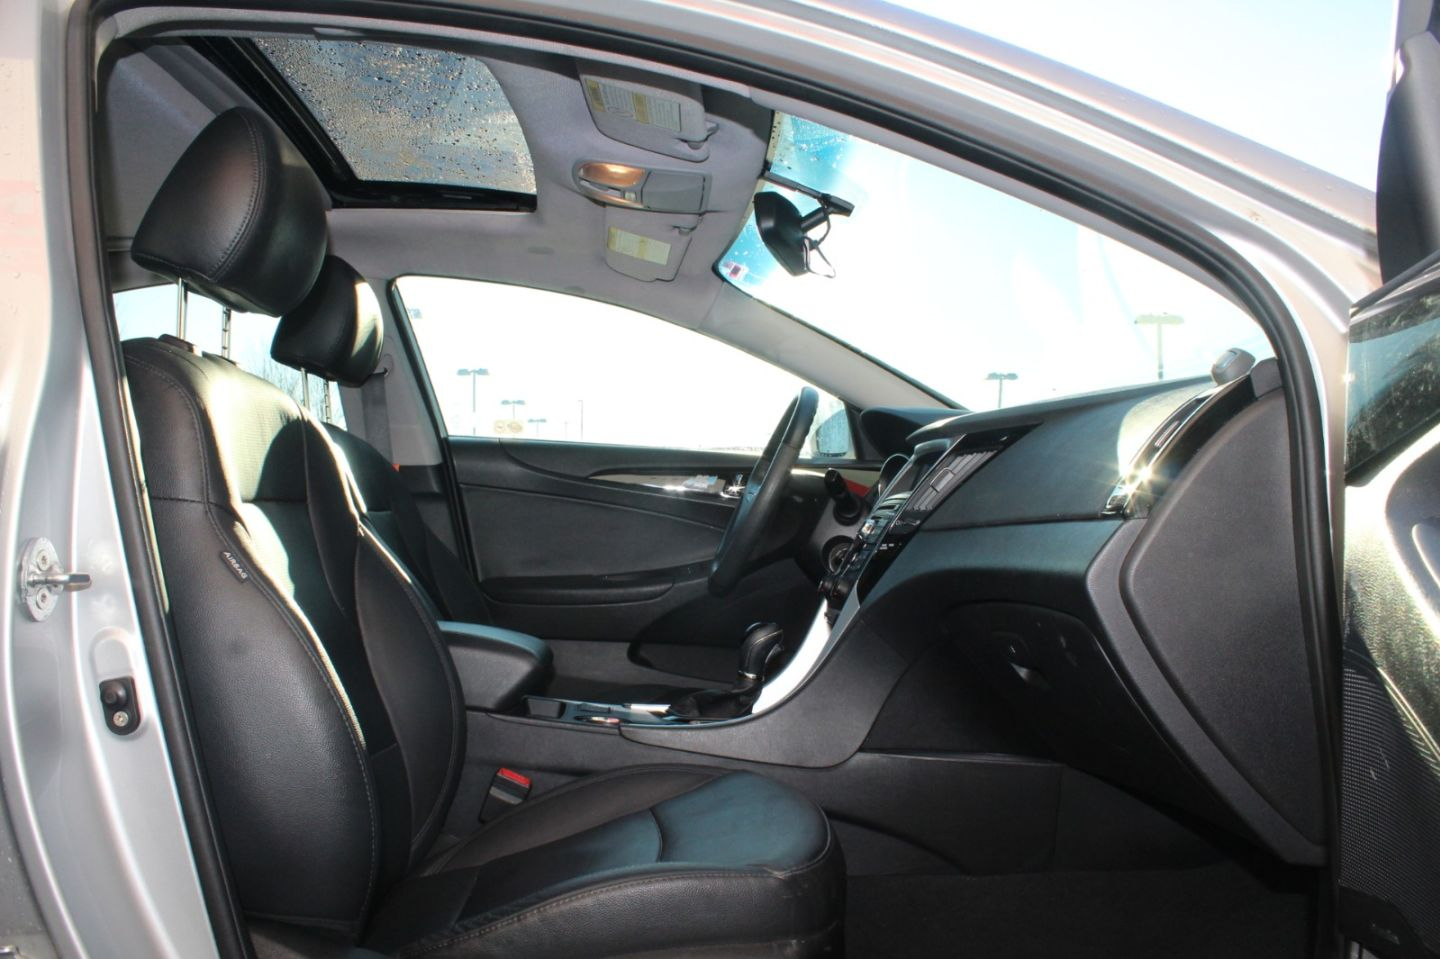 2011 Hyundai Sonata  for sale in Edmonton, Alberta